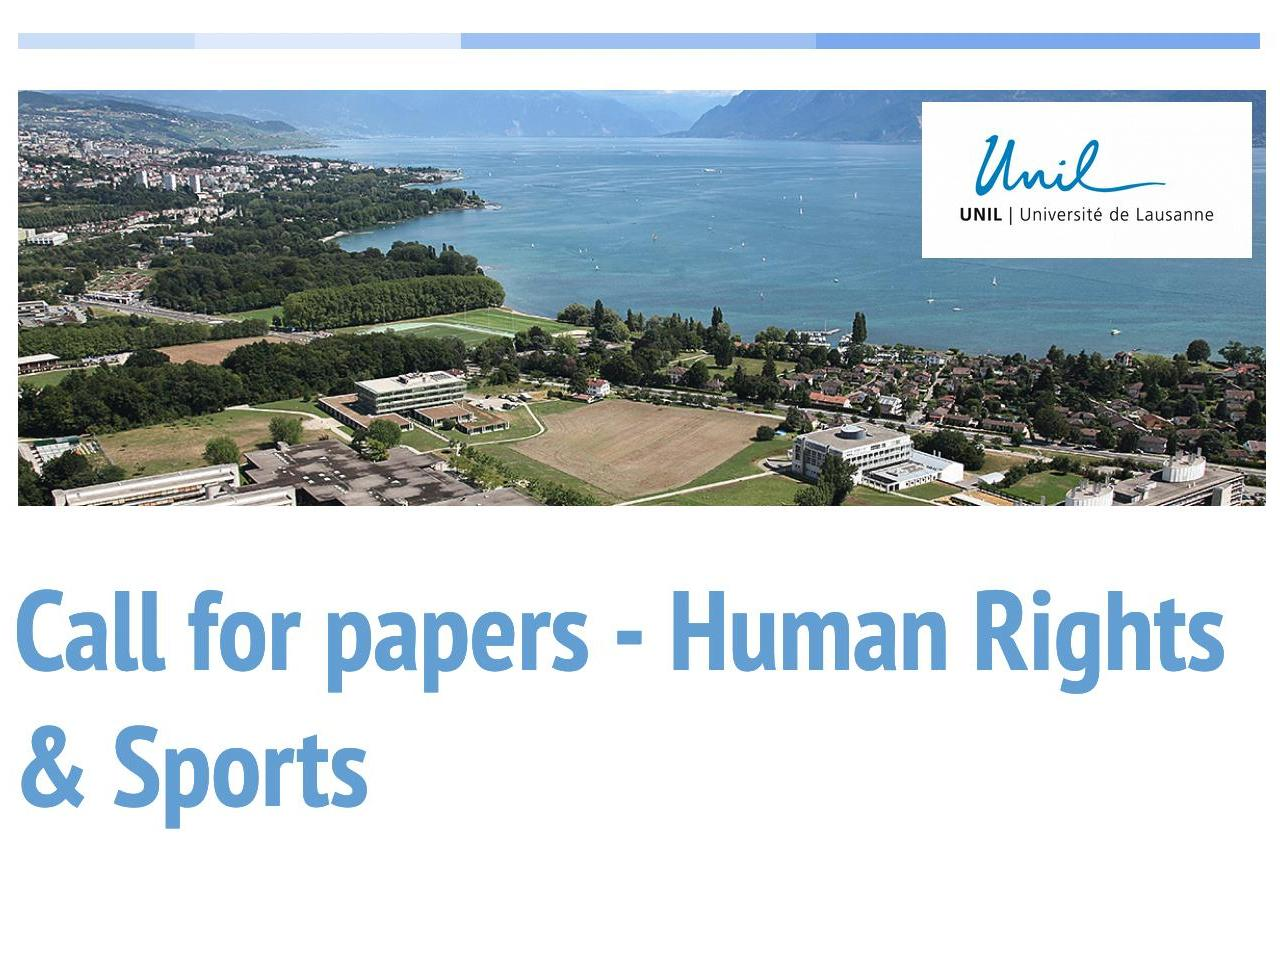 Human Rights & Sports - Call for Papers